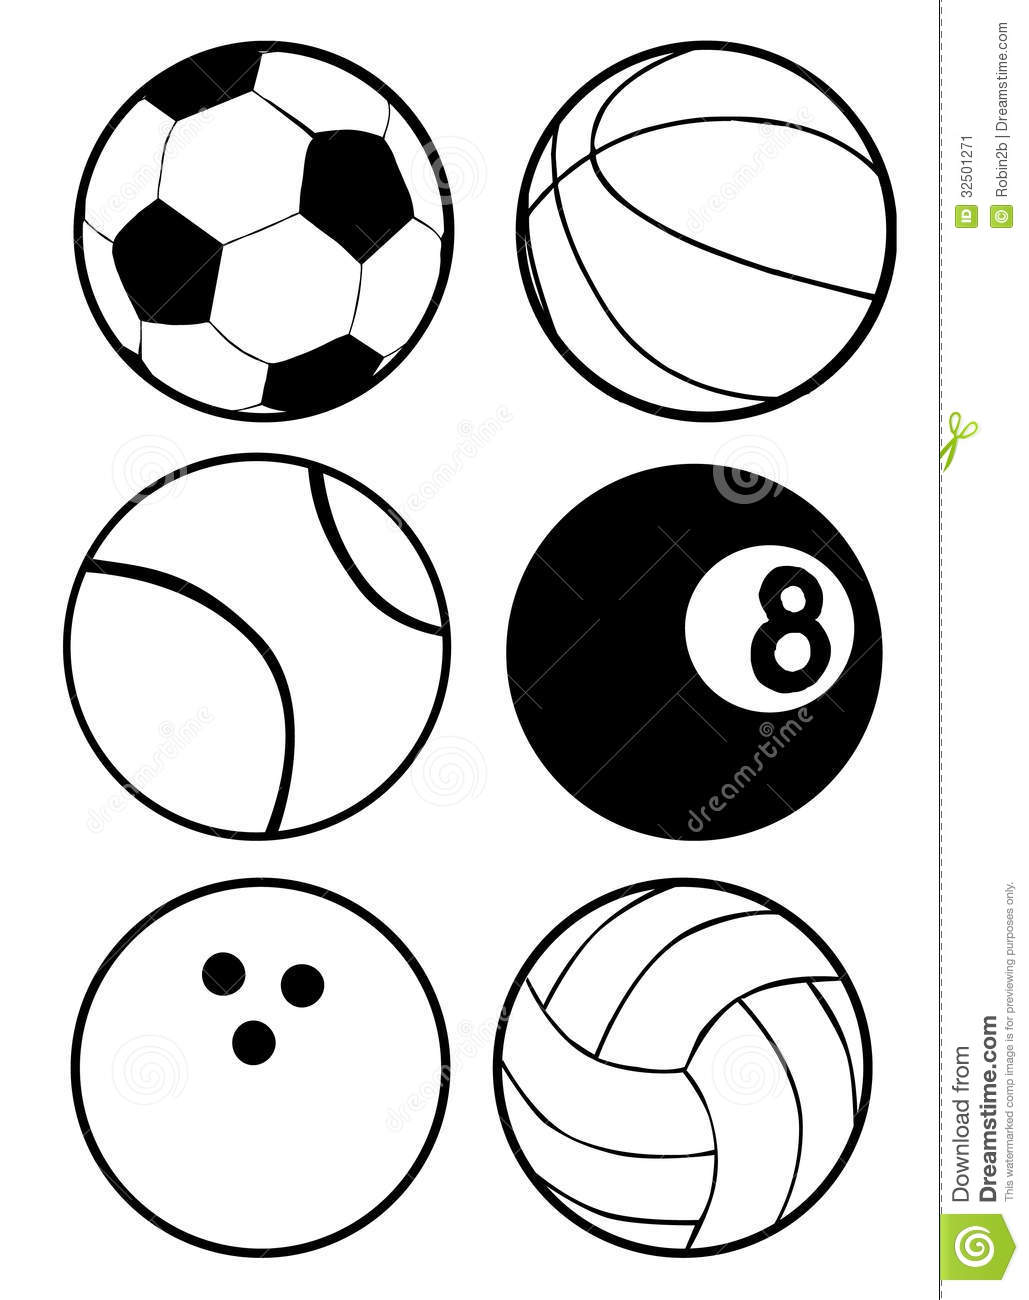 black and white sports balls stock vector illustration of lines rh dreamstime com sports equipment clipart black and white sports car clipart black and white